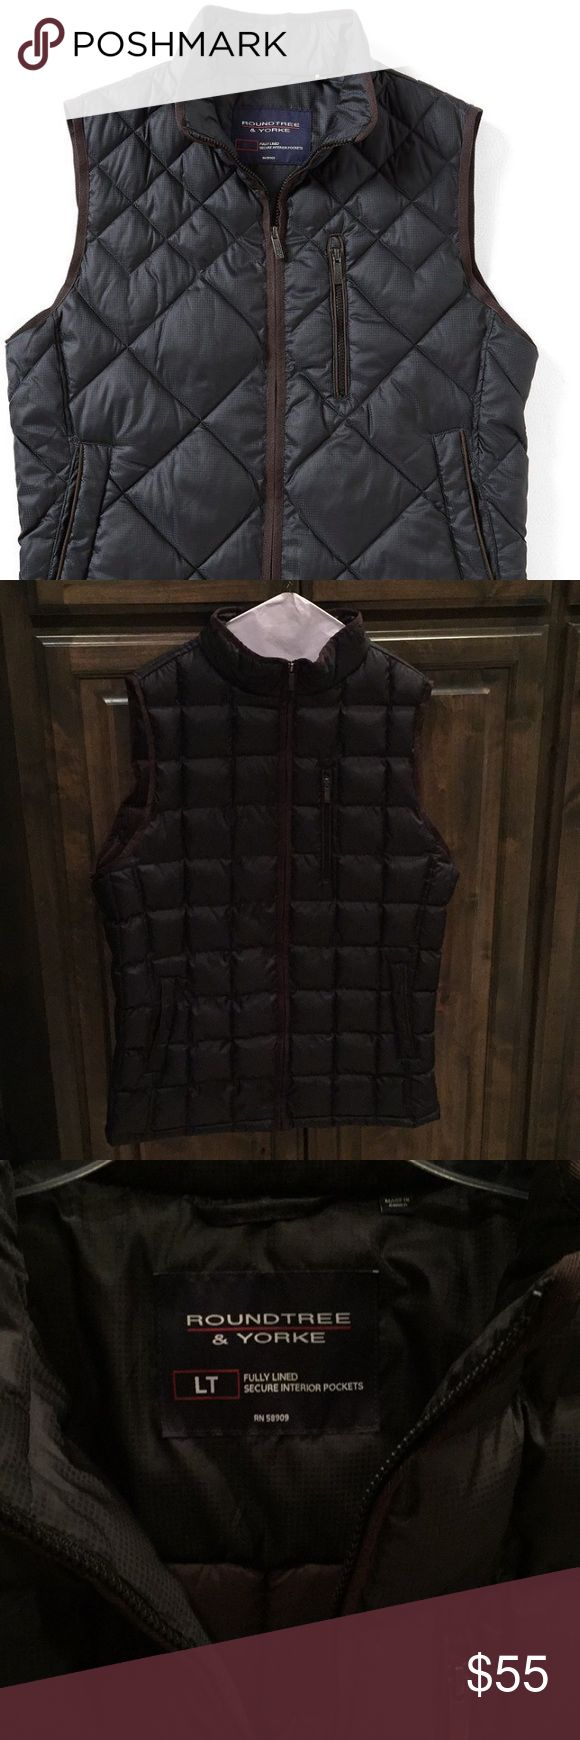 Like new Roundtree & Yorke Quilted Vest LT $149 Like new! Looks brand new- Roundtree & Yorke Quilted Vest - Men's Tall - Large - fully lined - 100% poly - Zip Front - colors: Black/ Brown - bought brand new for $149!! Roundtree & Yorke Jackets & Coats Vests